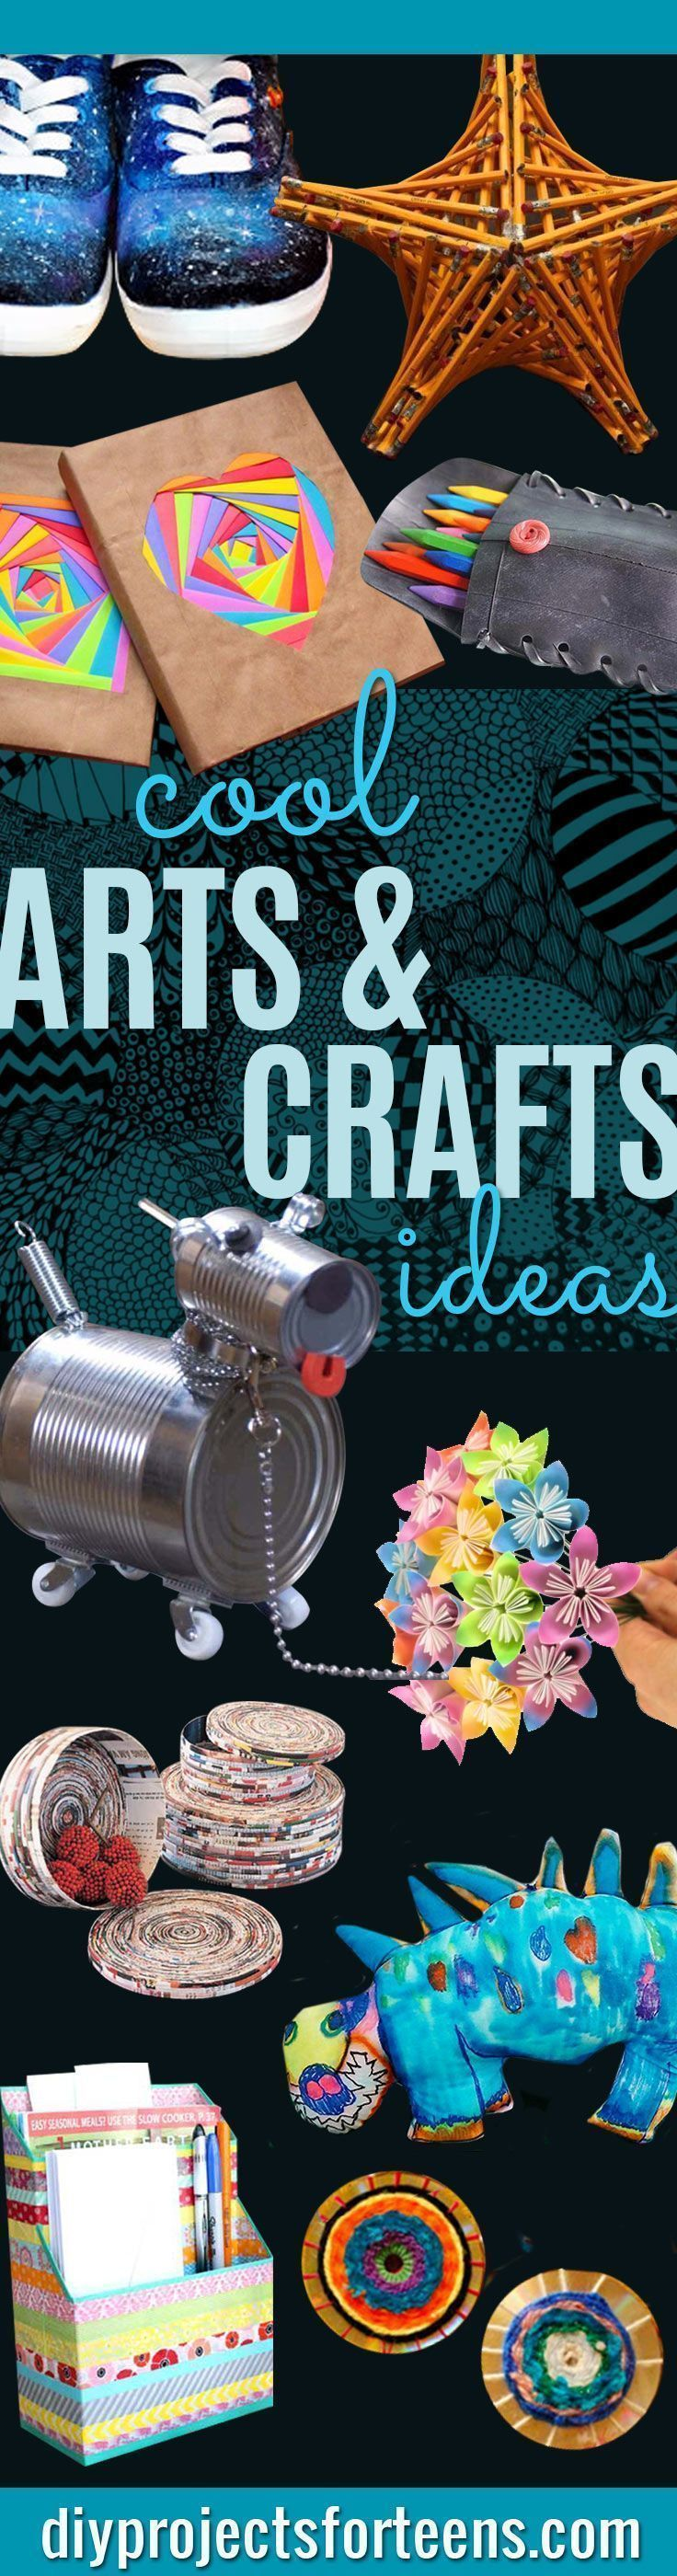 44+ Art and craft ideas for adults at home information